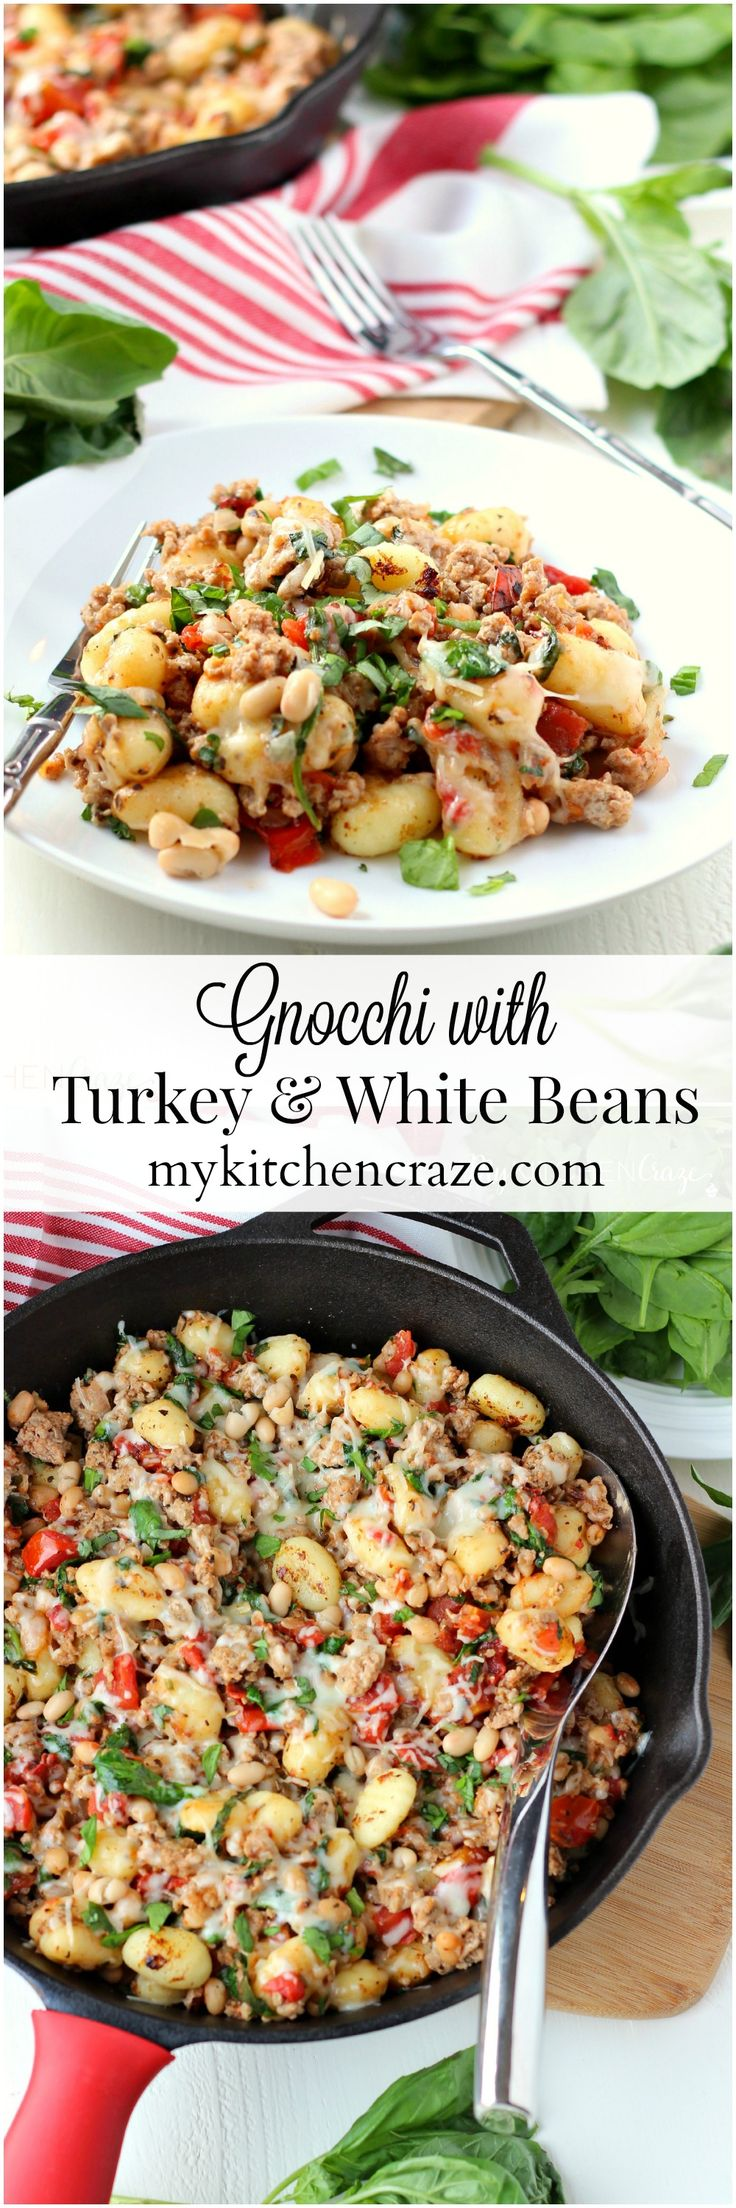 Gnocchi with Turkey & White Beans ~ mykitchencraze.com ~ A no fuss meal that will be on your table within 30 minutes.